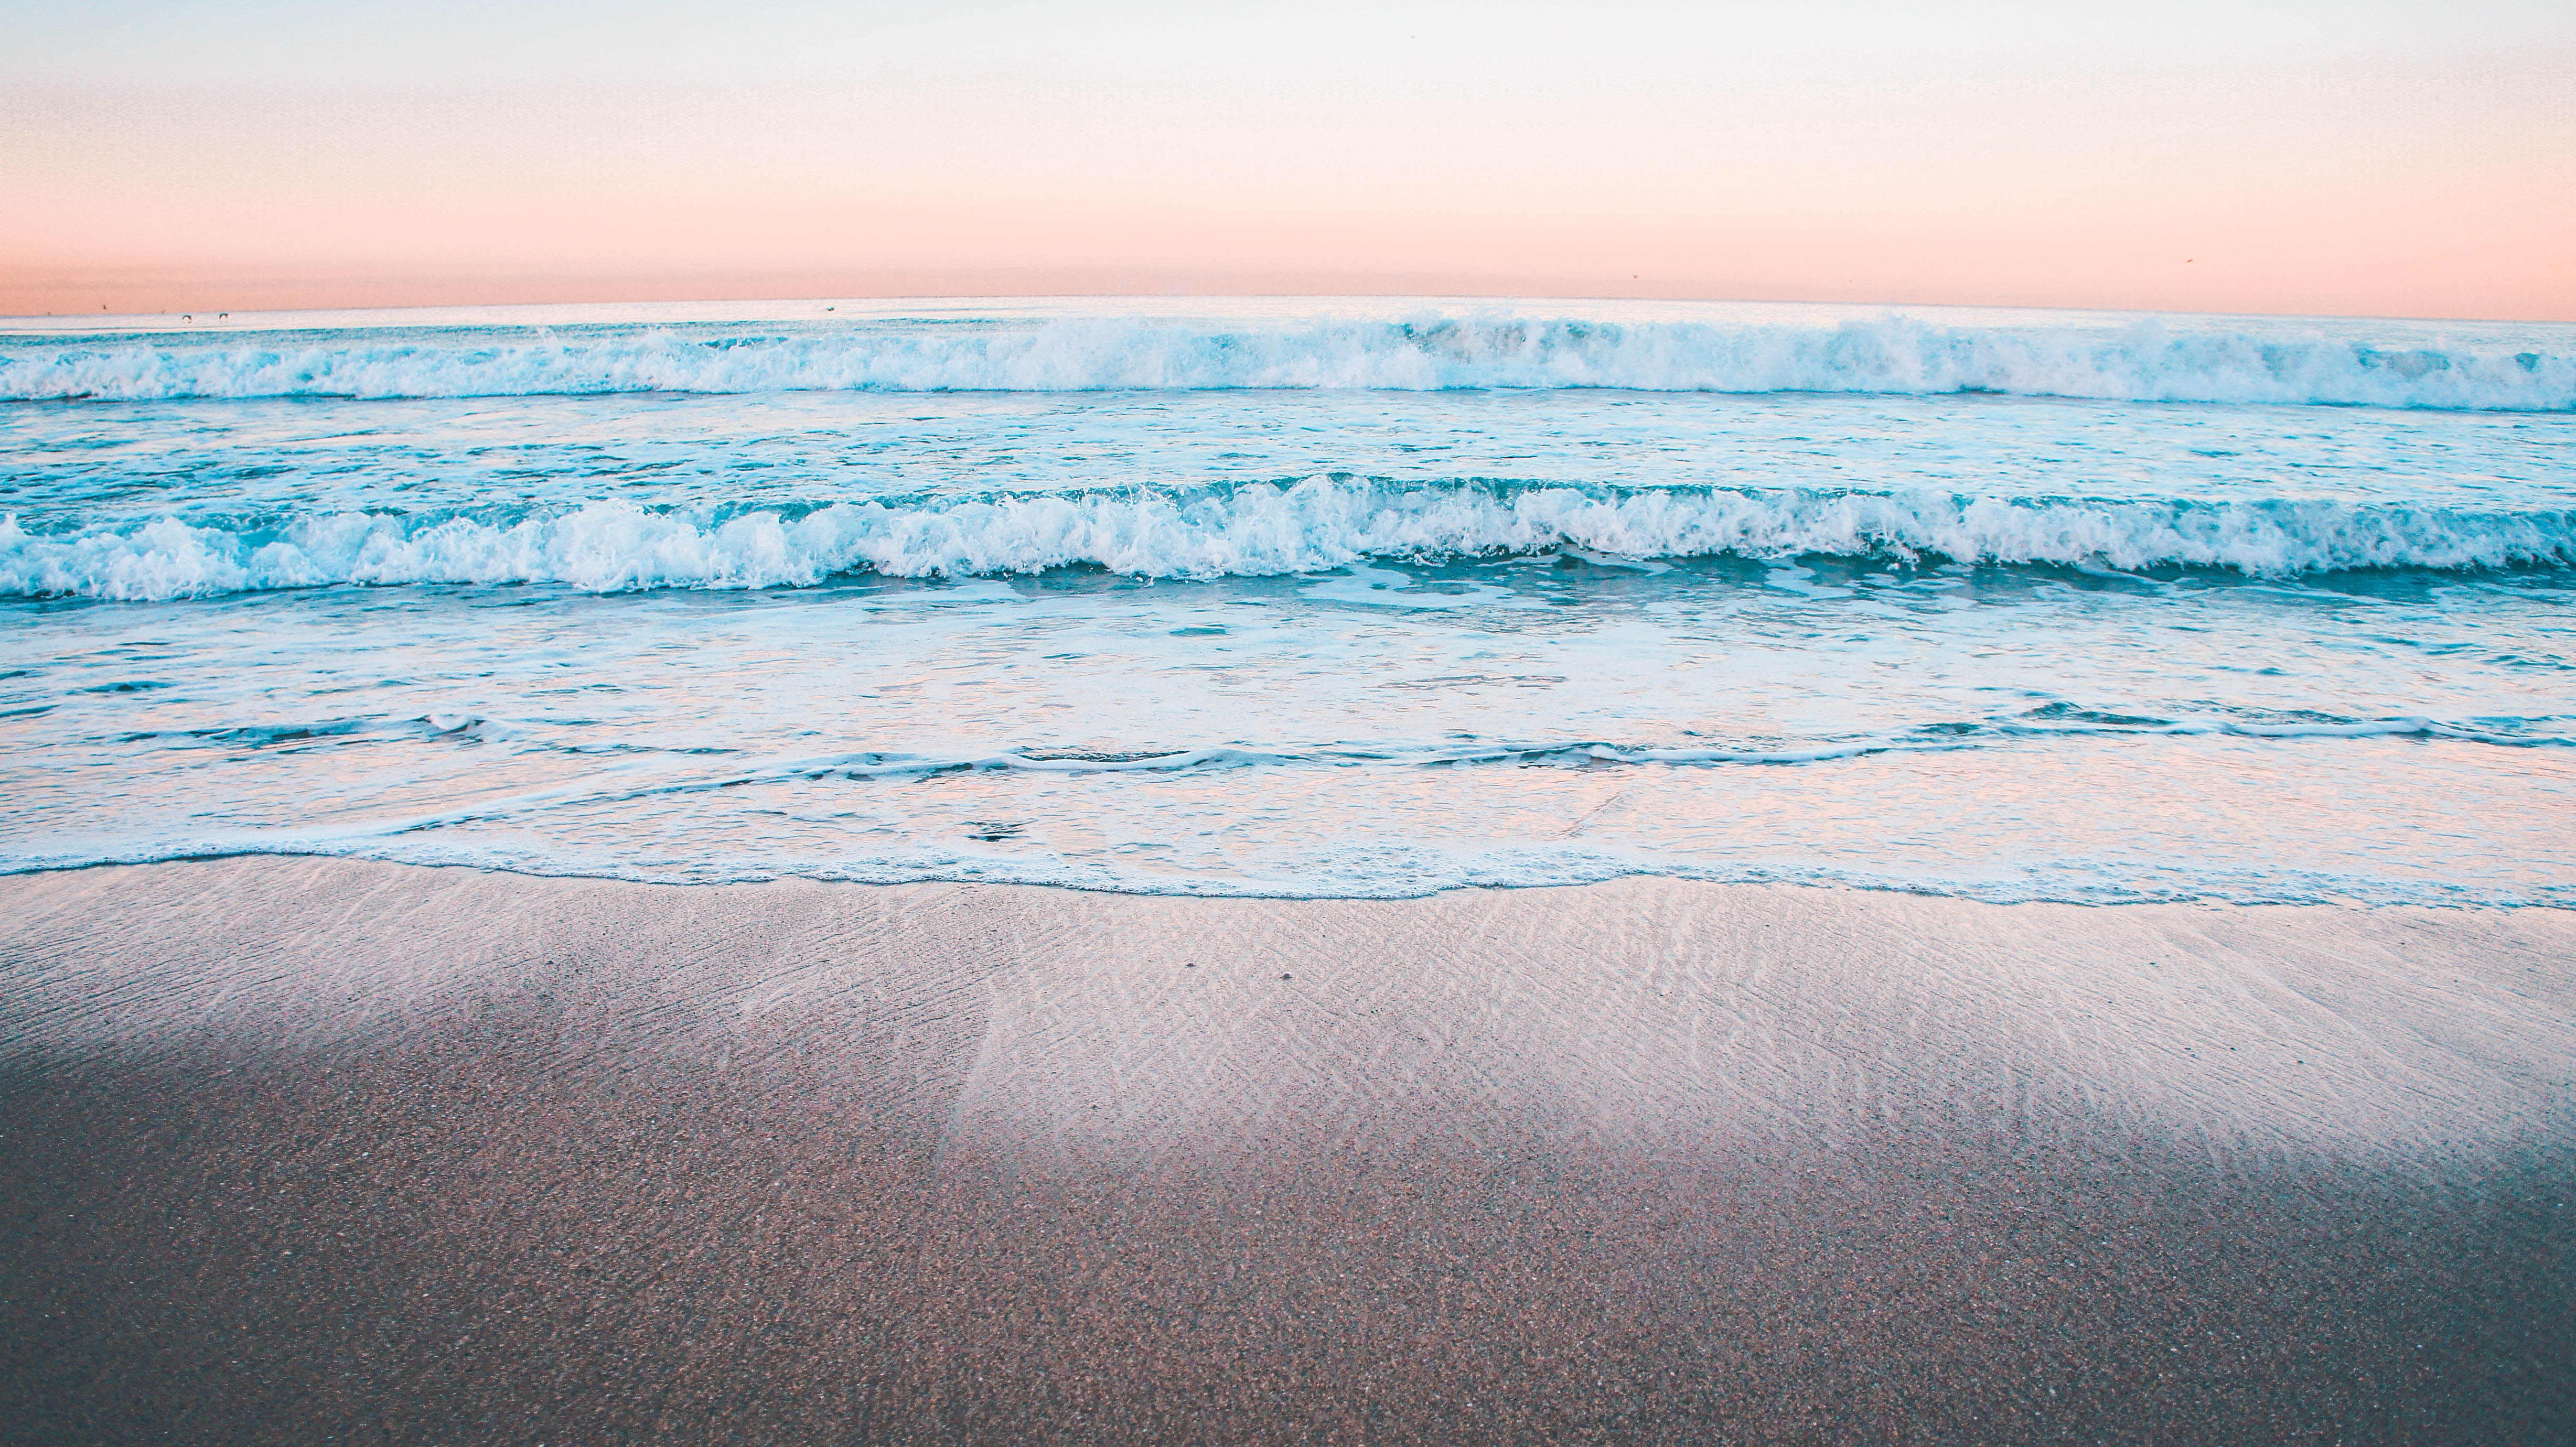 Peaceful Calm Waves 5k Hd Nature 4k Wallpapers Images